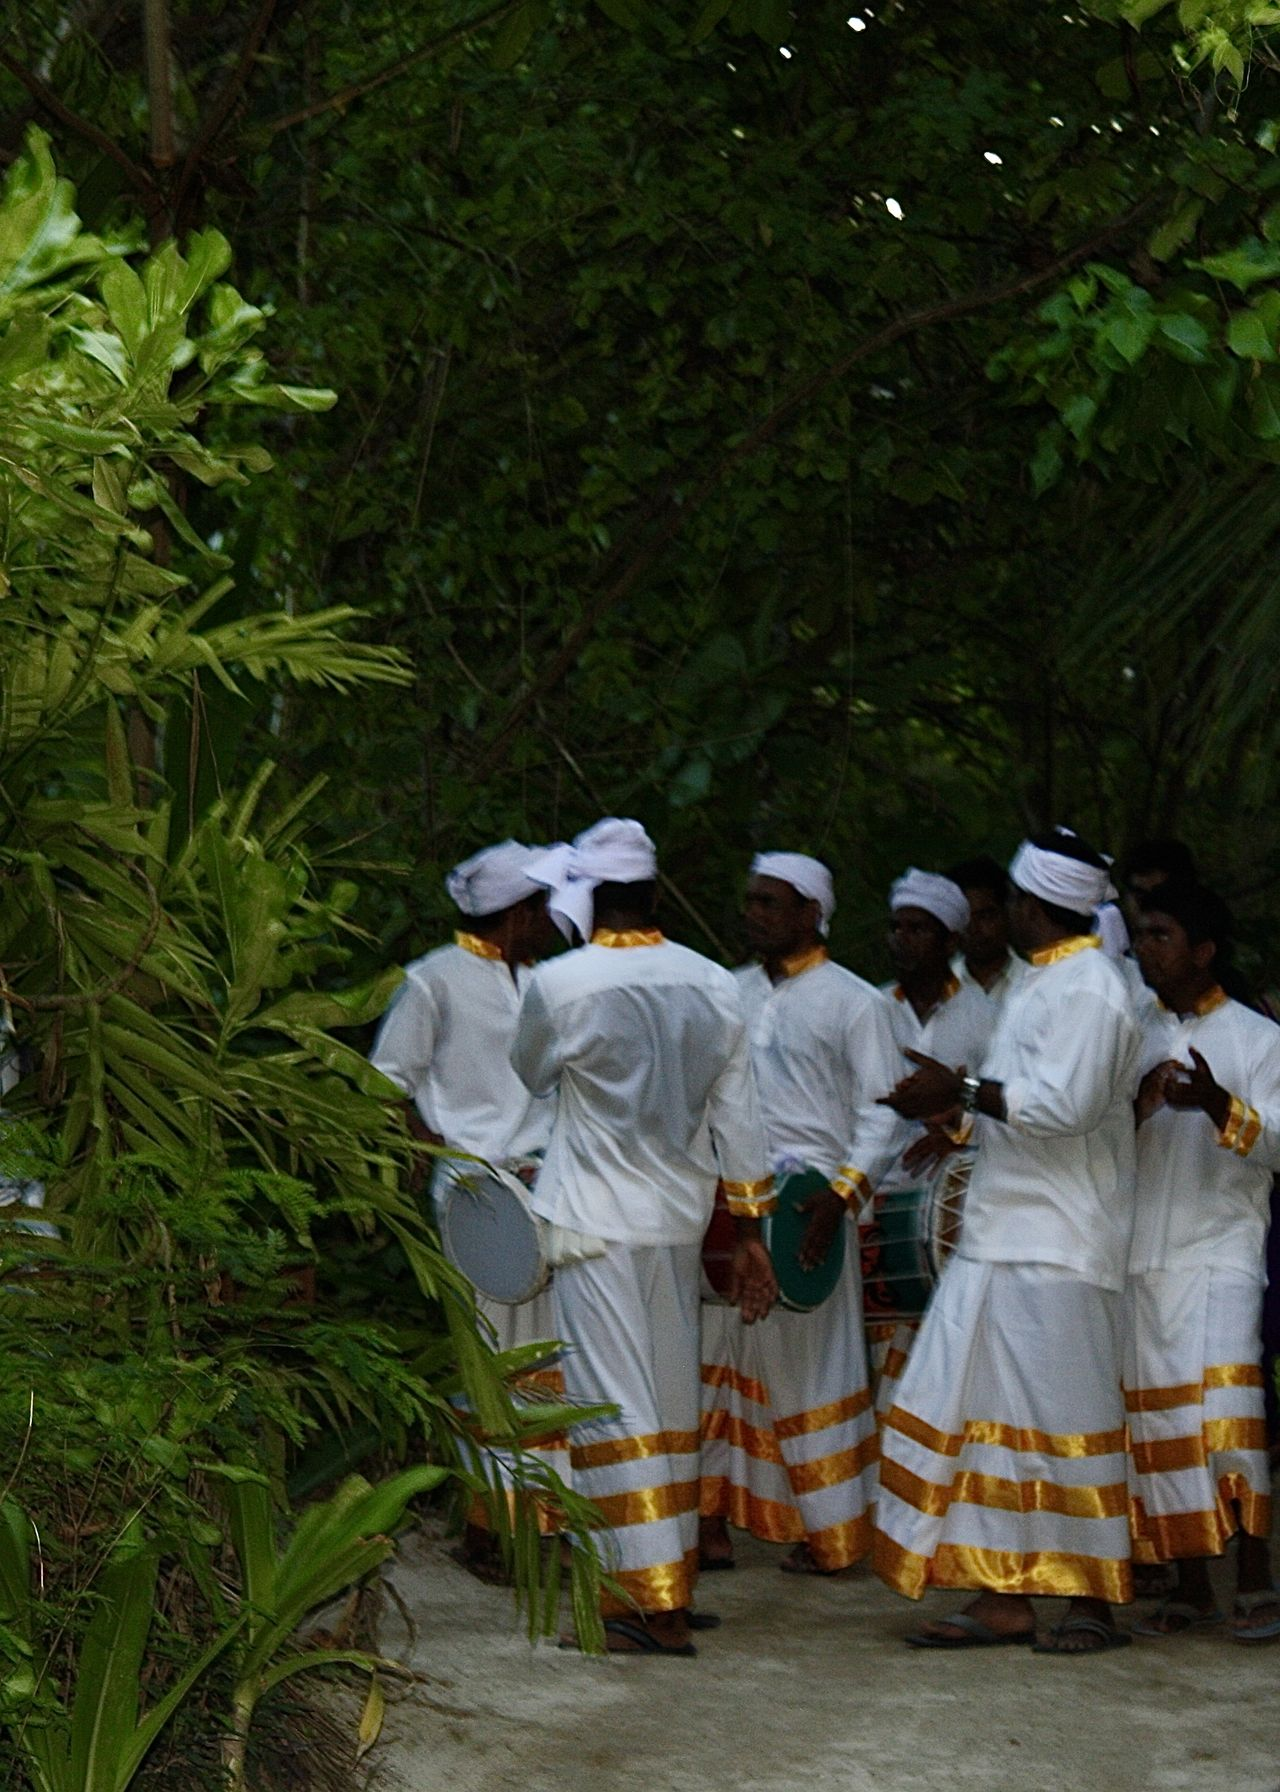 traditional dancers in tropical garden, maldives Beach Colors Dancers Dancing Environment Garden Golden Green Greenery Large Group Of People Light Maldives Men Occupation Outdoors People Sand Togetherness Tradition Traditional Traditional Clothing Travel Tropical White